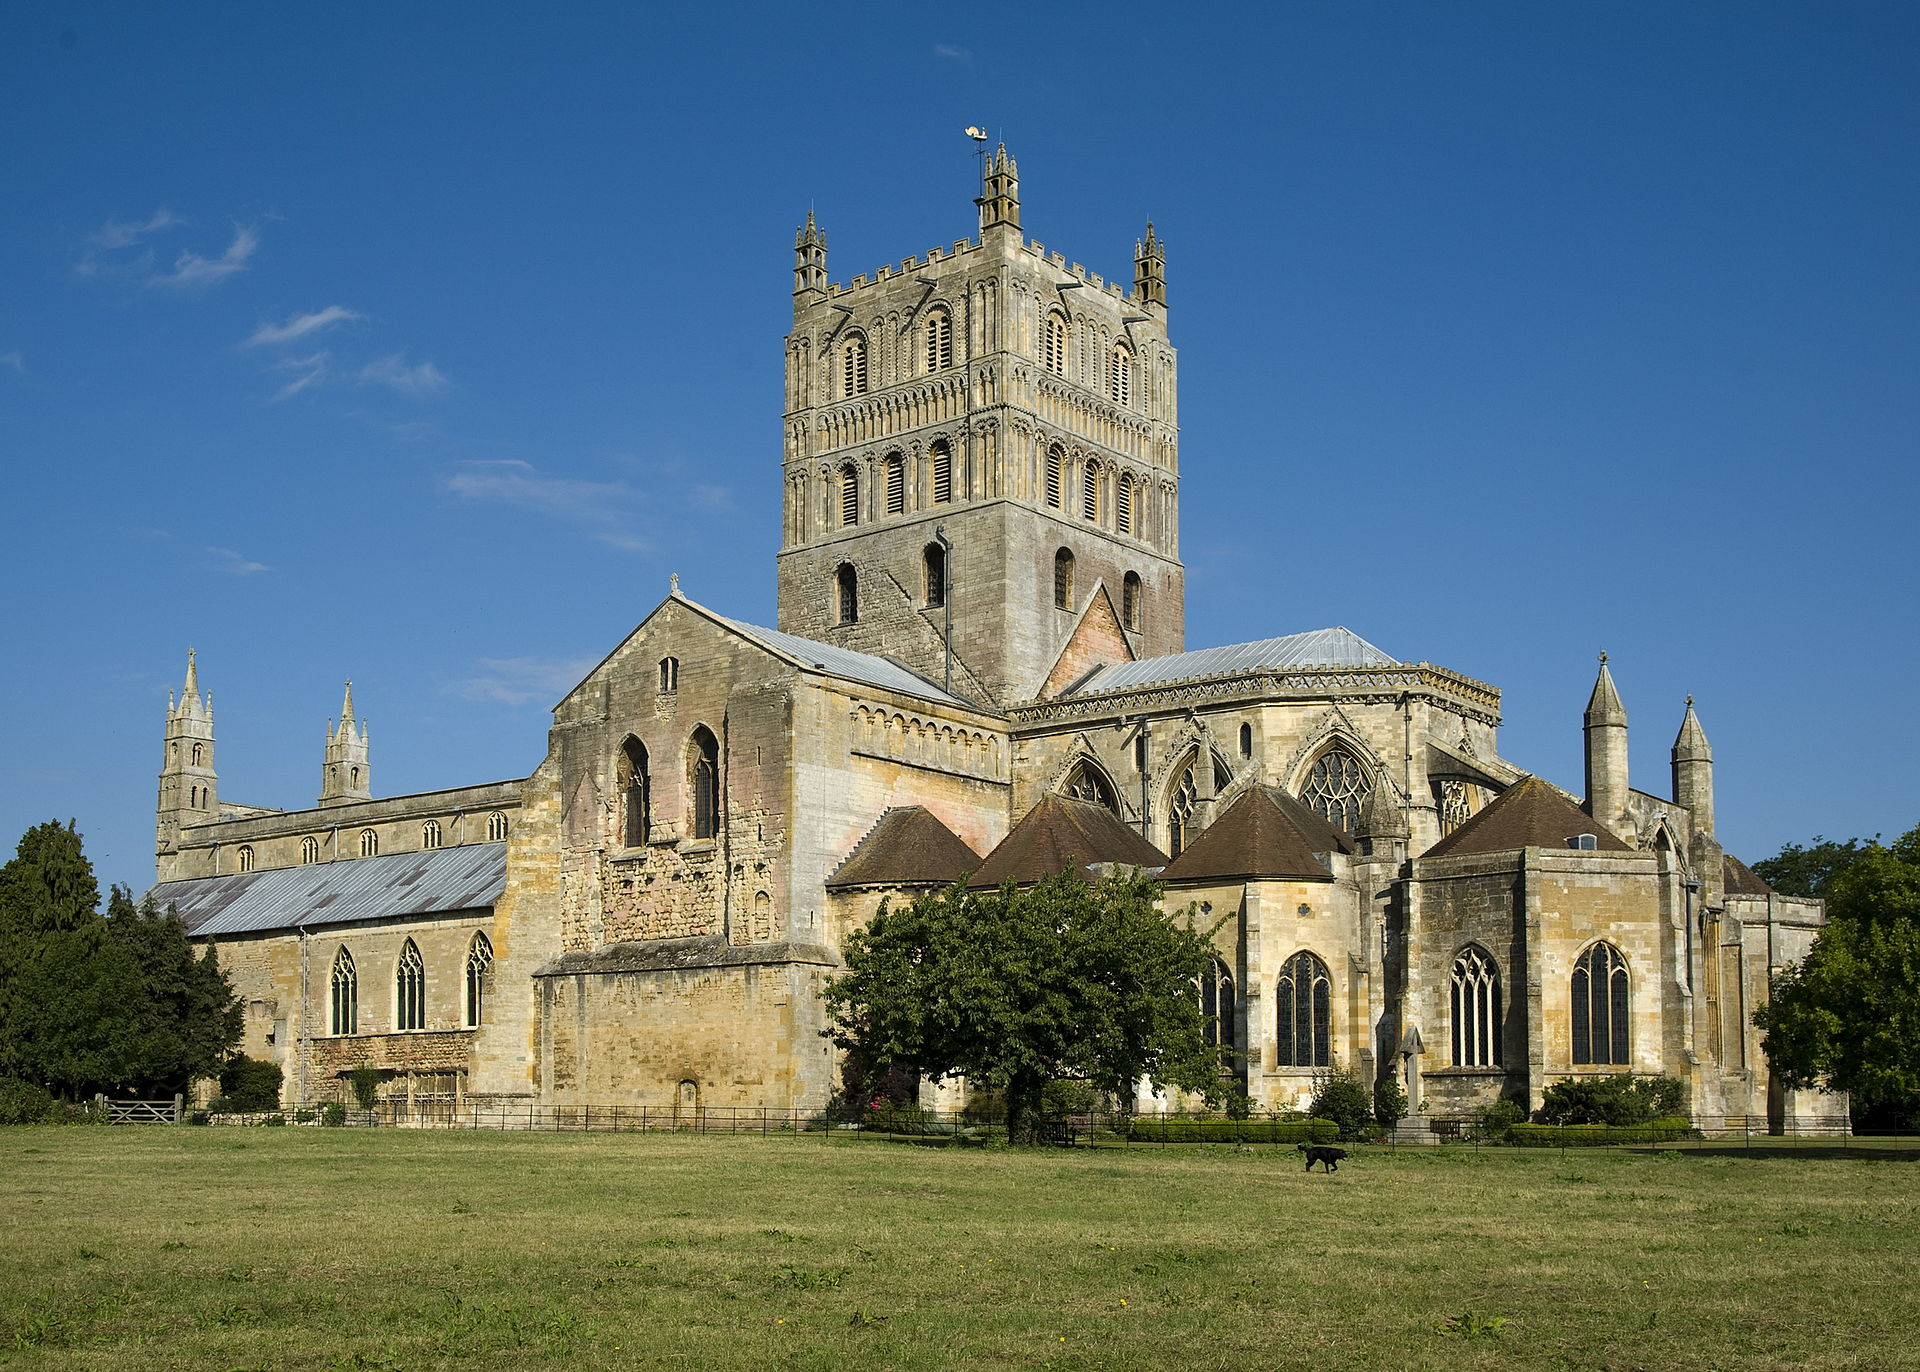 Tewkesbury Abbey, where Mary lodged on her way to Ludlow Castle